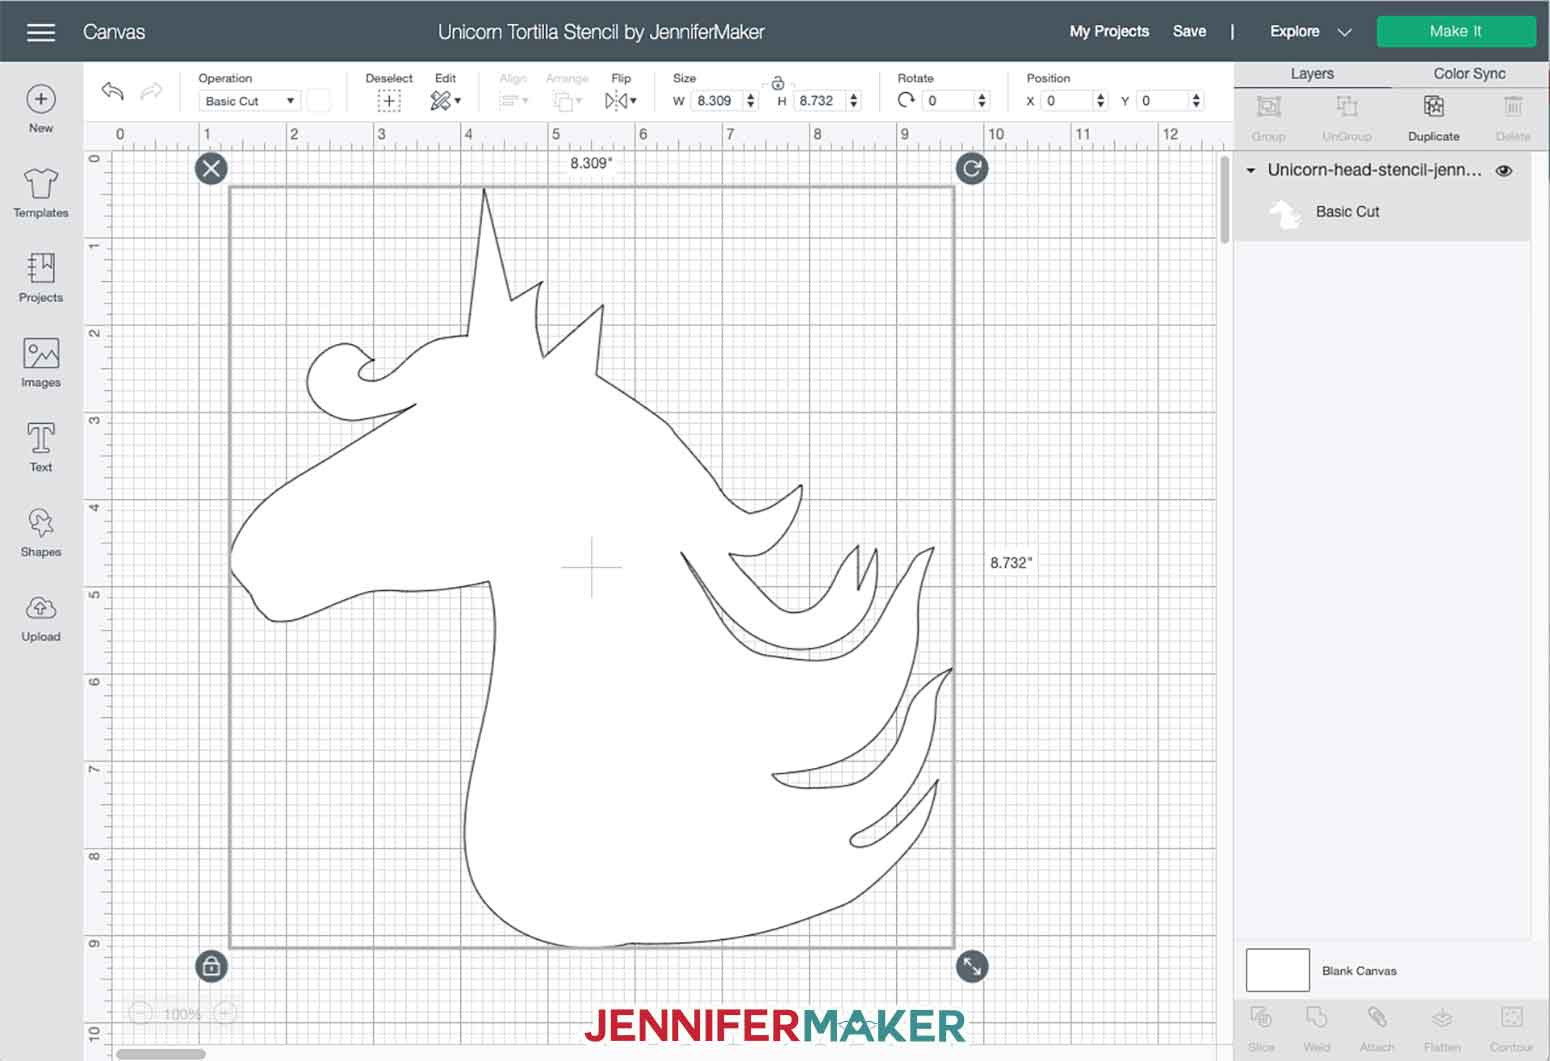 "Unicorn stencil svg cut file uploaded to Cricut Design Space, already sized for a 10"" tortilla"